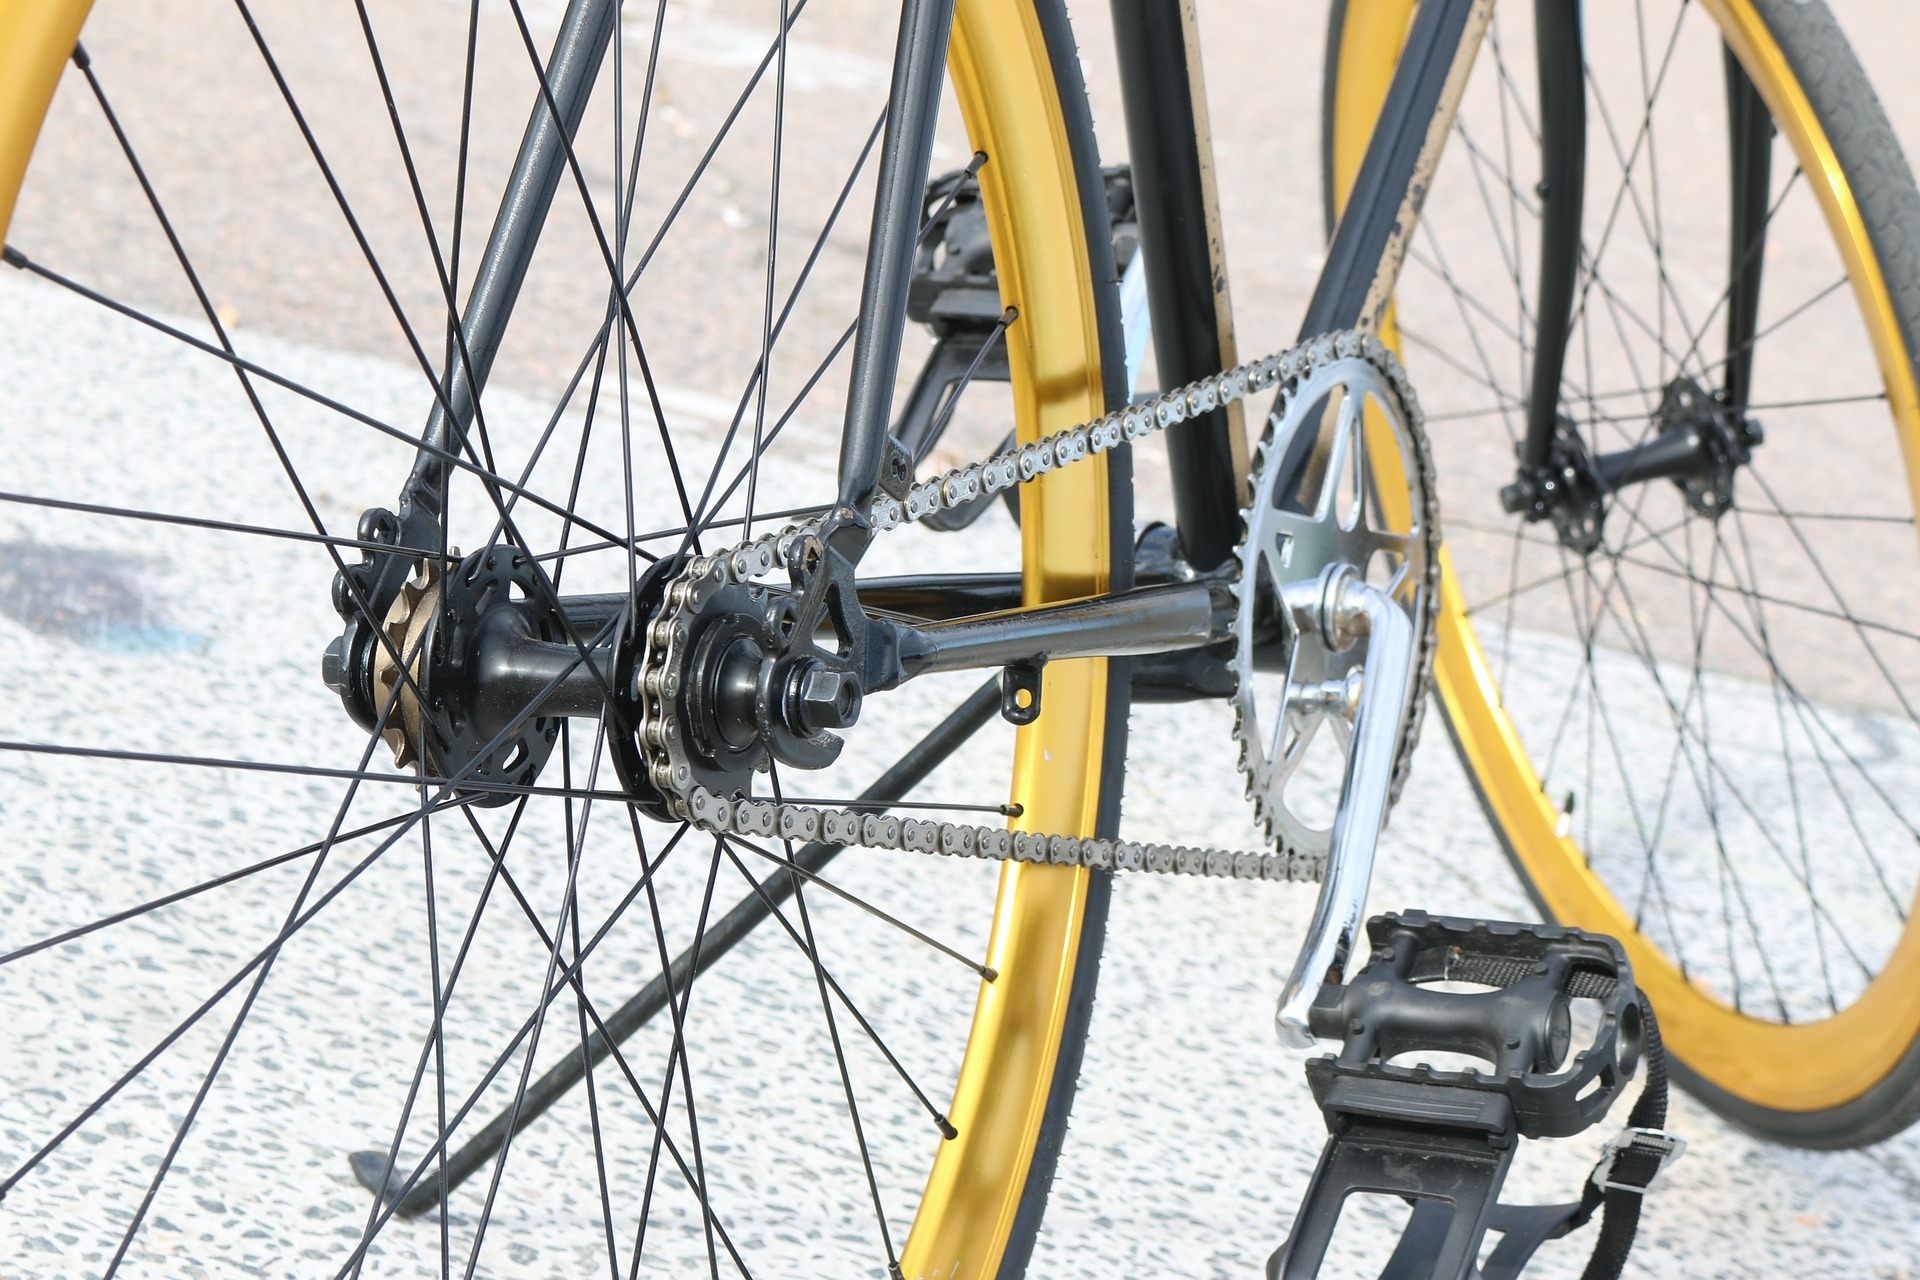 BICYCLE RENTAL AND REPAIR SHOPS